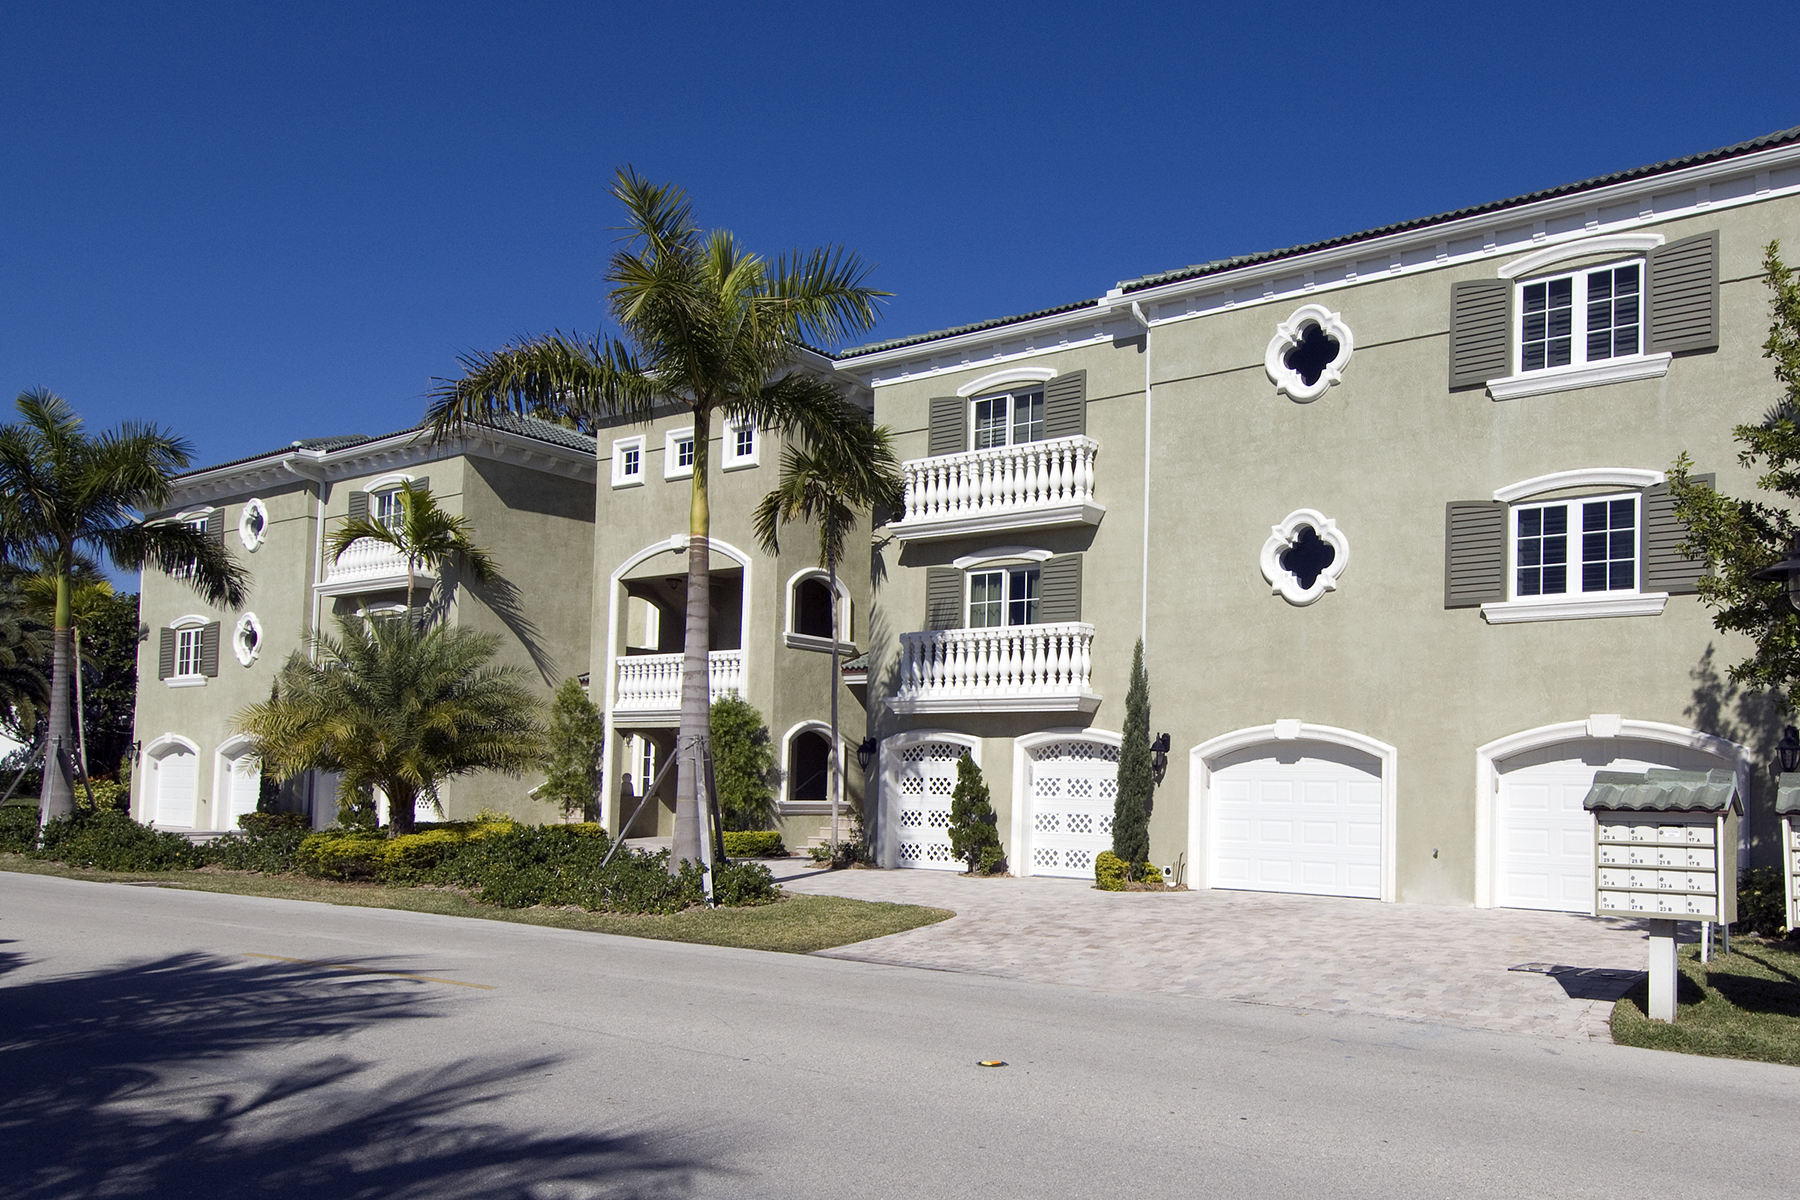 Condominium for Sale at Spacious Canalfront Condomium at Ocean Reef 9 Pumpkin Cay Road Unit B Key Largo, Florida 33037 United States